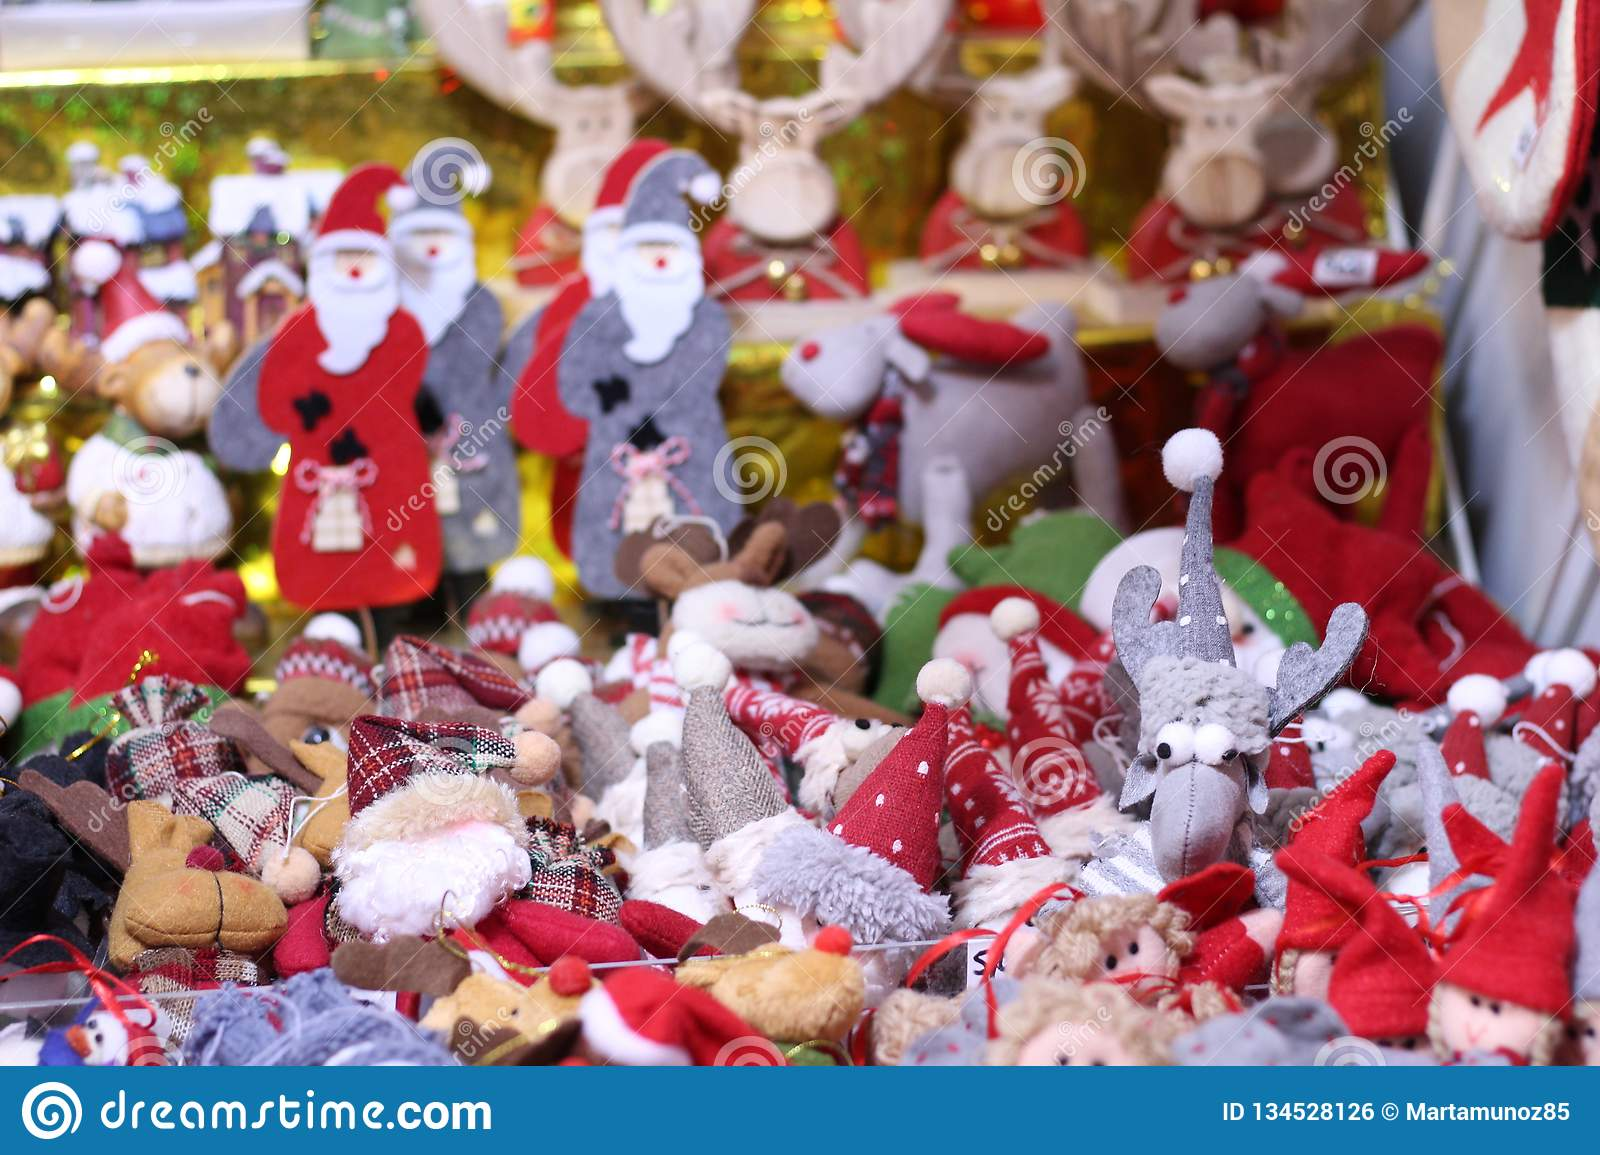 Assortment of toy decoration for the Christmas tree in baskets in store